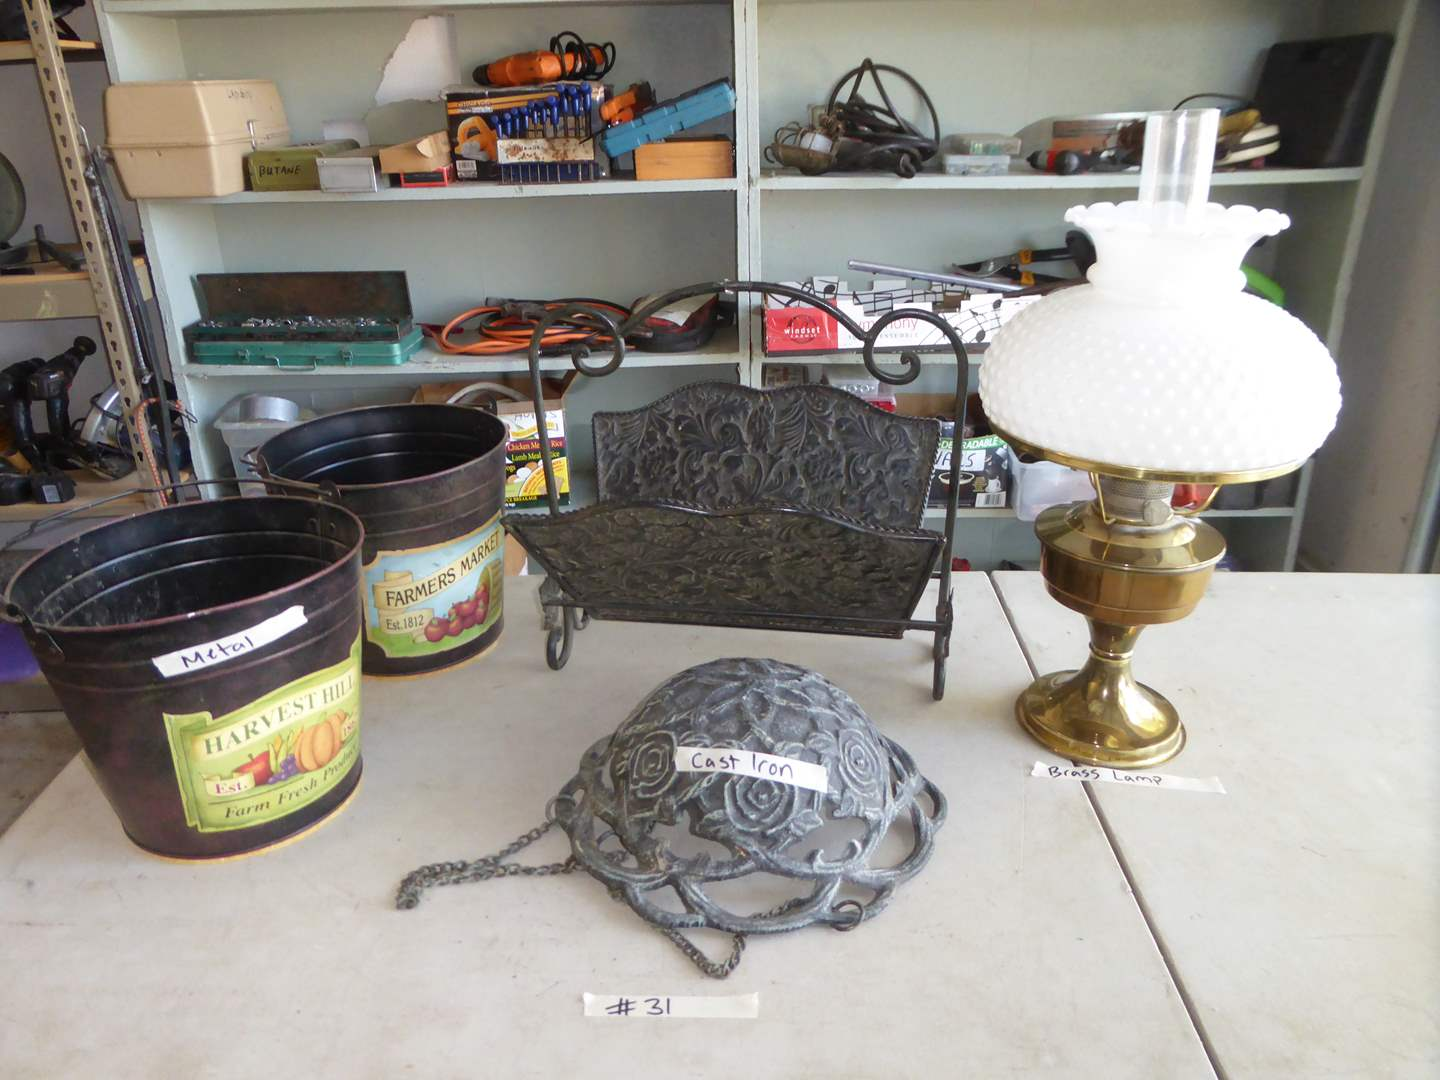 Lot # 31 - Small Brass Lamp, Cast Iron Basket & Metal Cans  (main image)